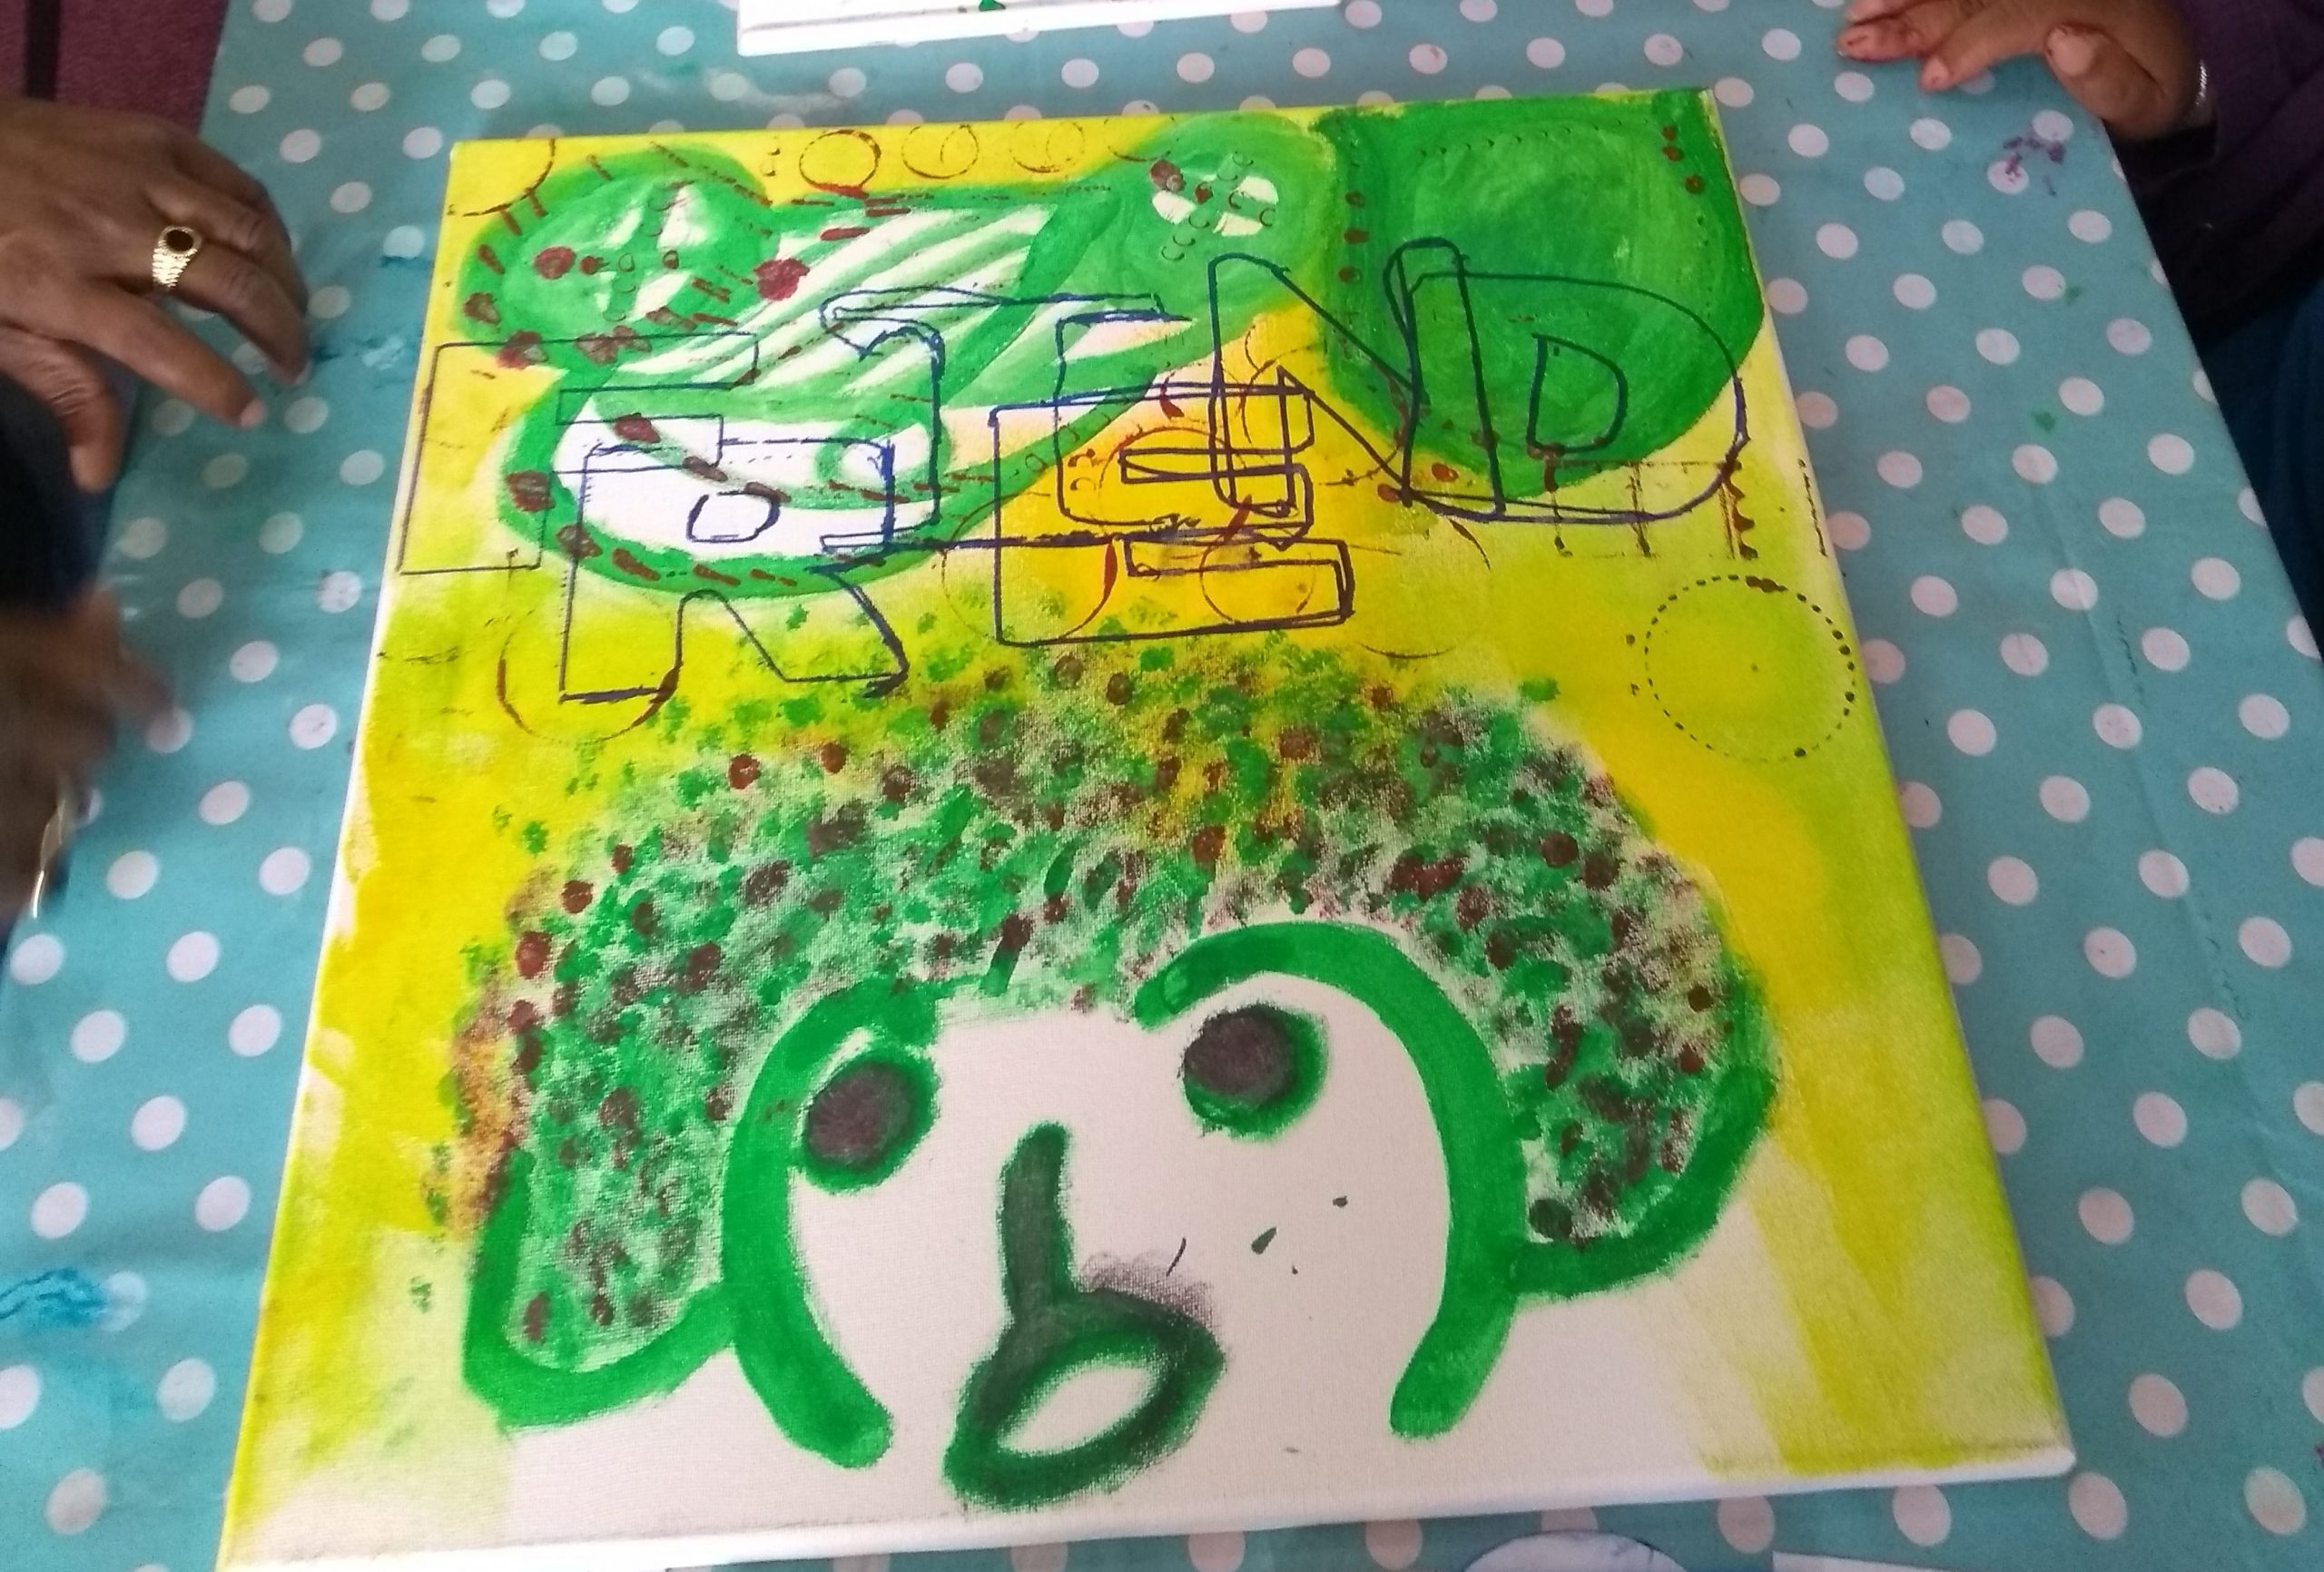 Artwork created by the Community Explorers Project